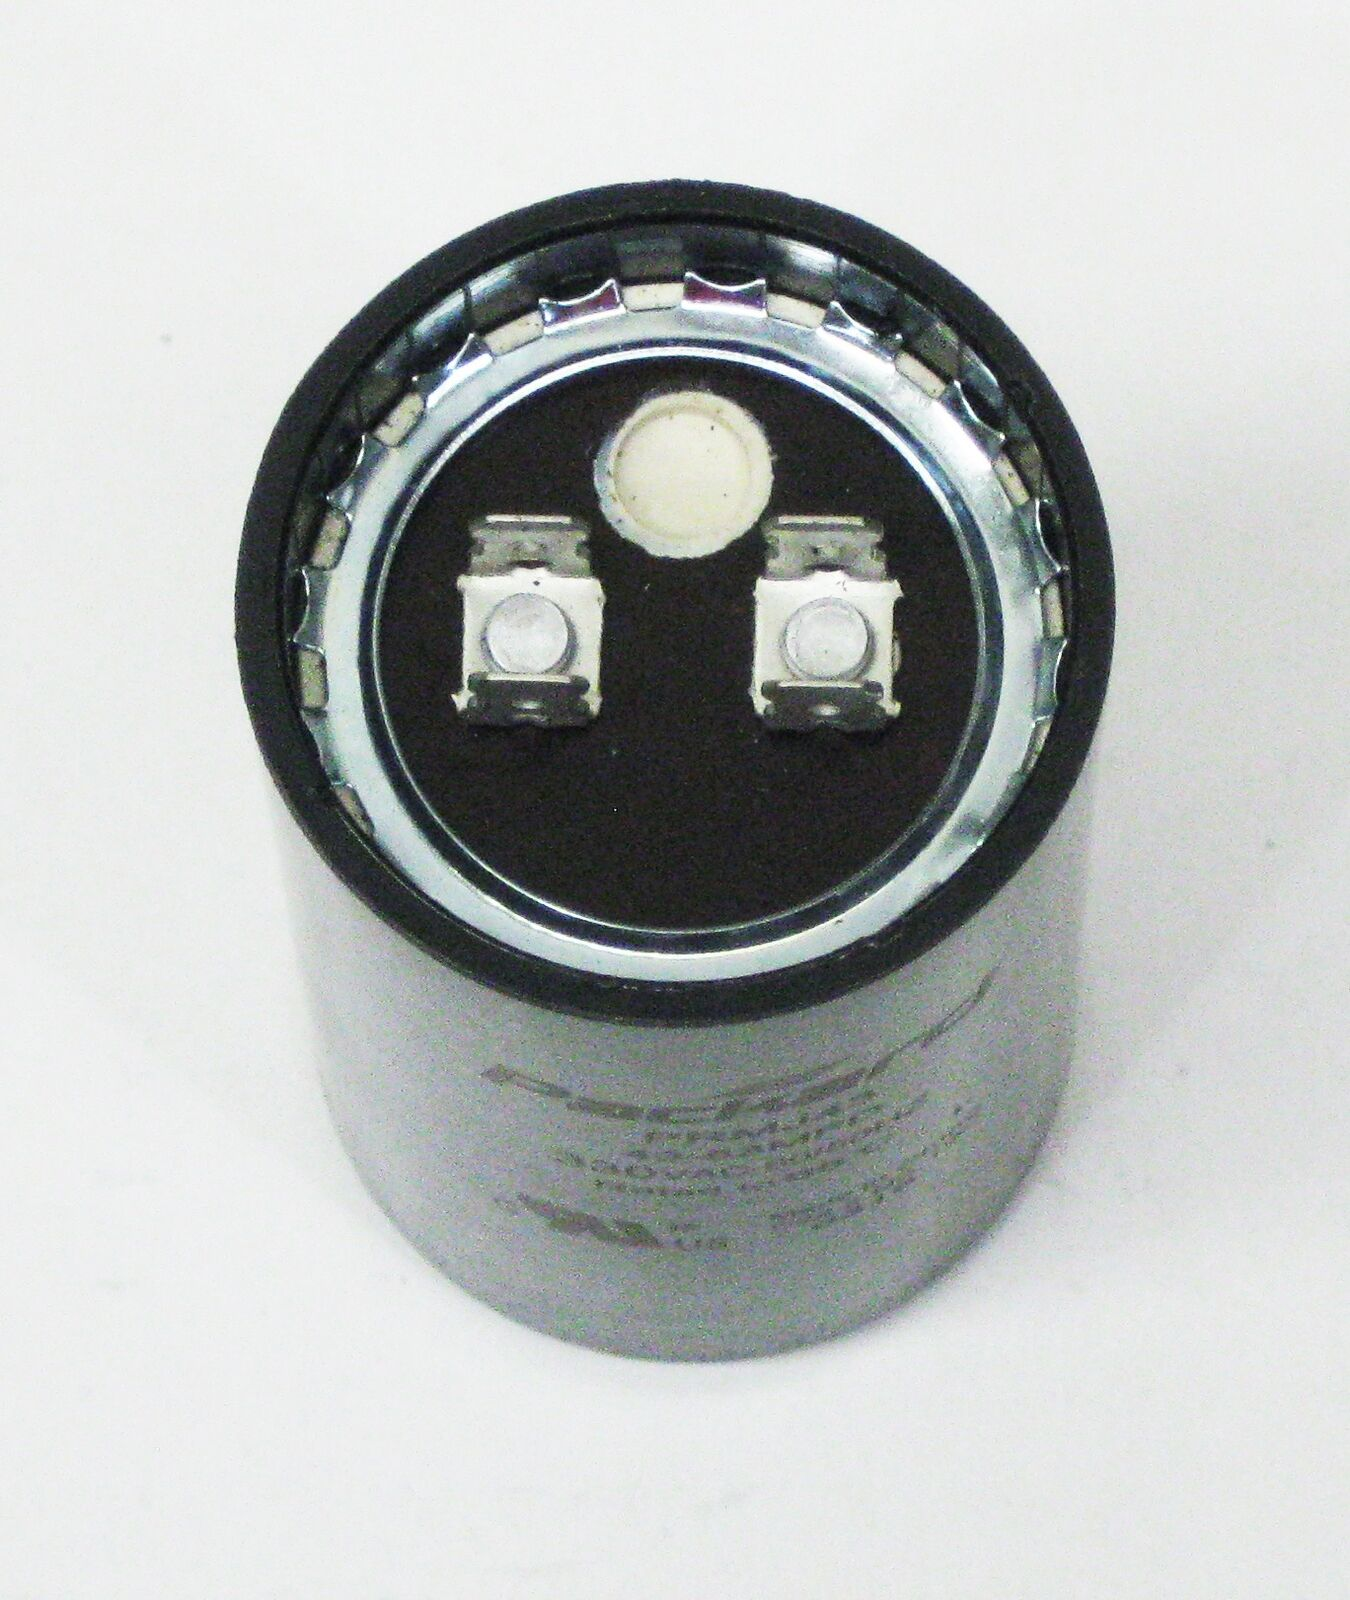 Mars Replacement Start Capacitor 330V 43-53 Mfd 11059 By Packard